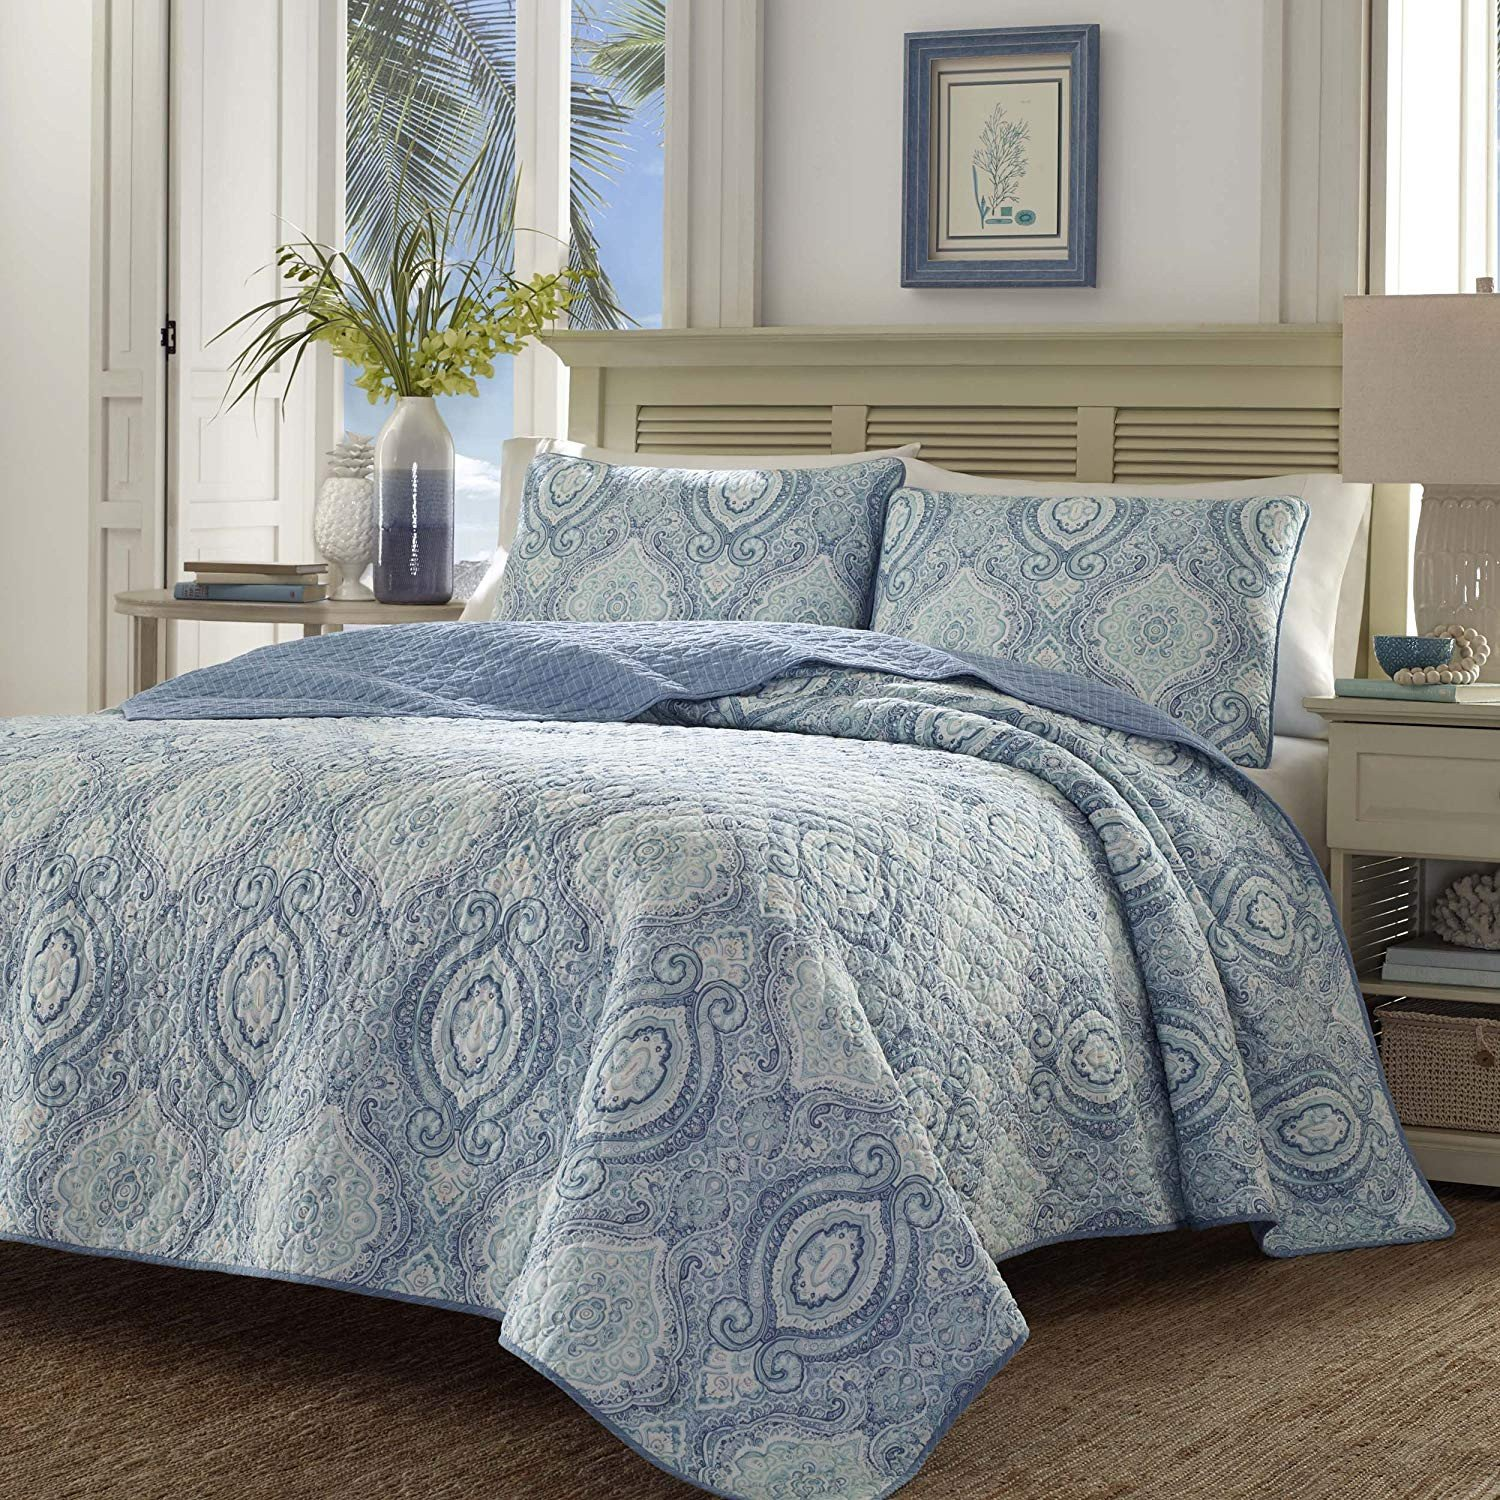 Tommy Bahama Bedroom Set Awesome tommy Bahama Turtle Cove Caribbean Quilt Set King Carribean Blue